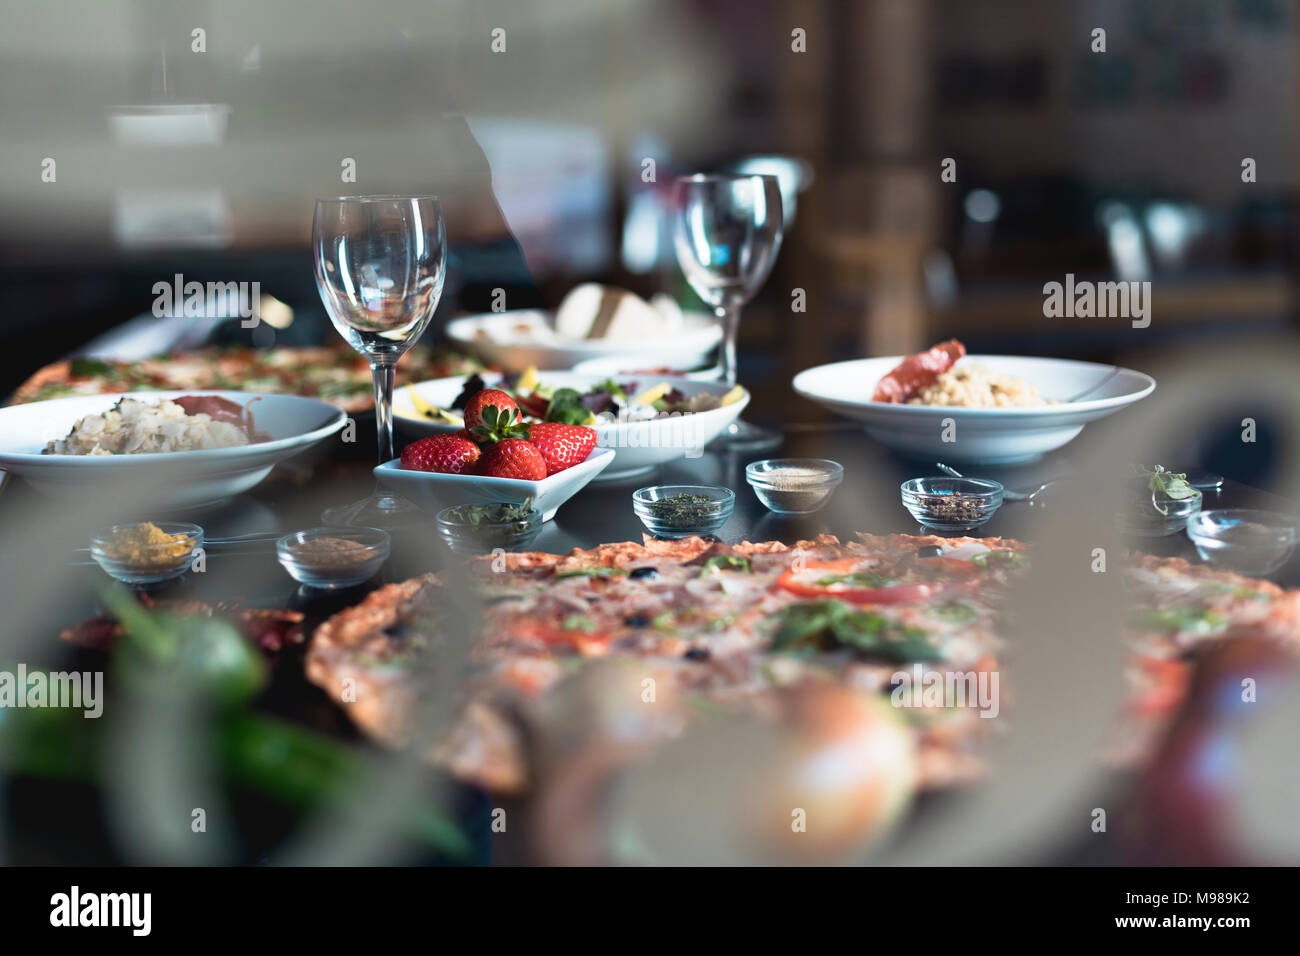 Italian food, pizza, salads and snacks - Stock Image